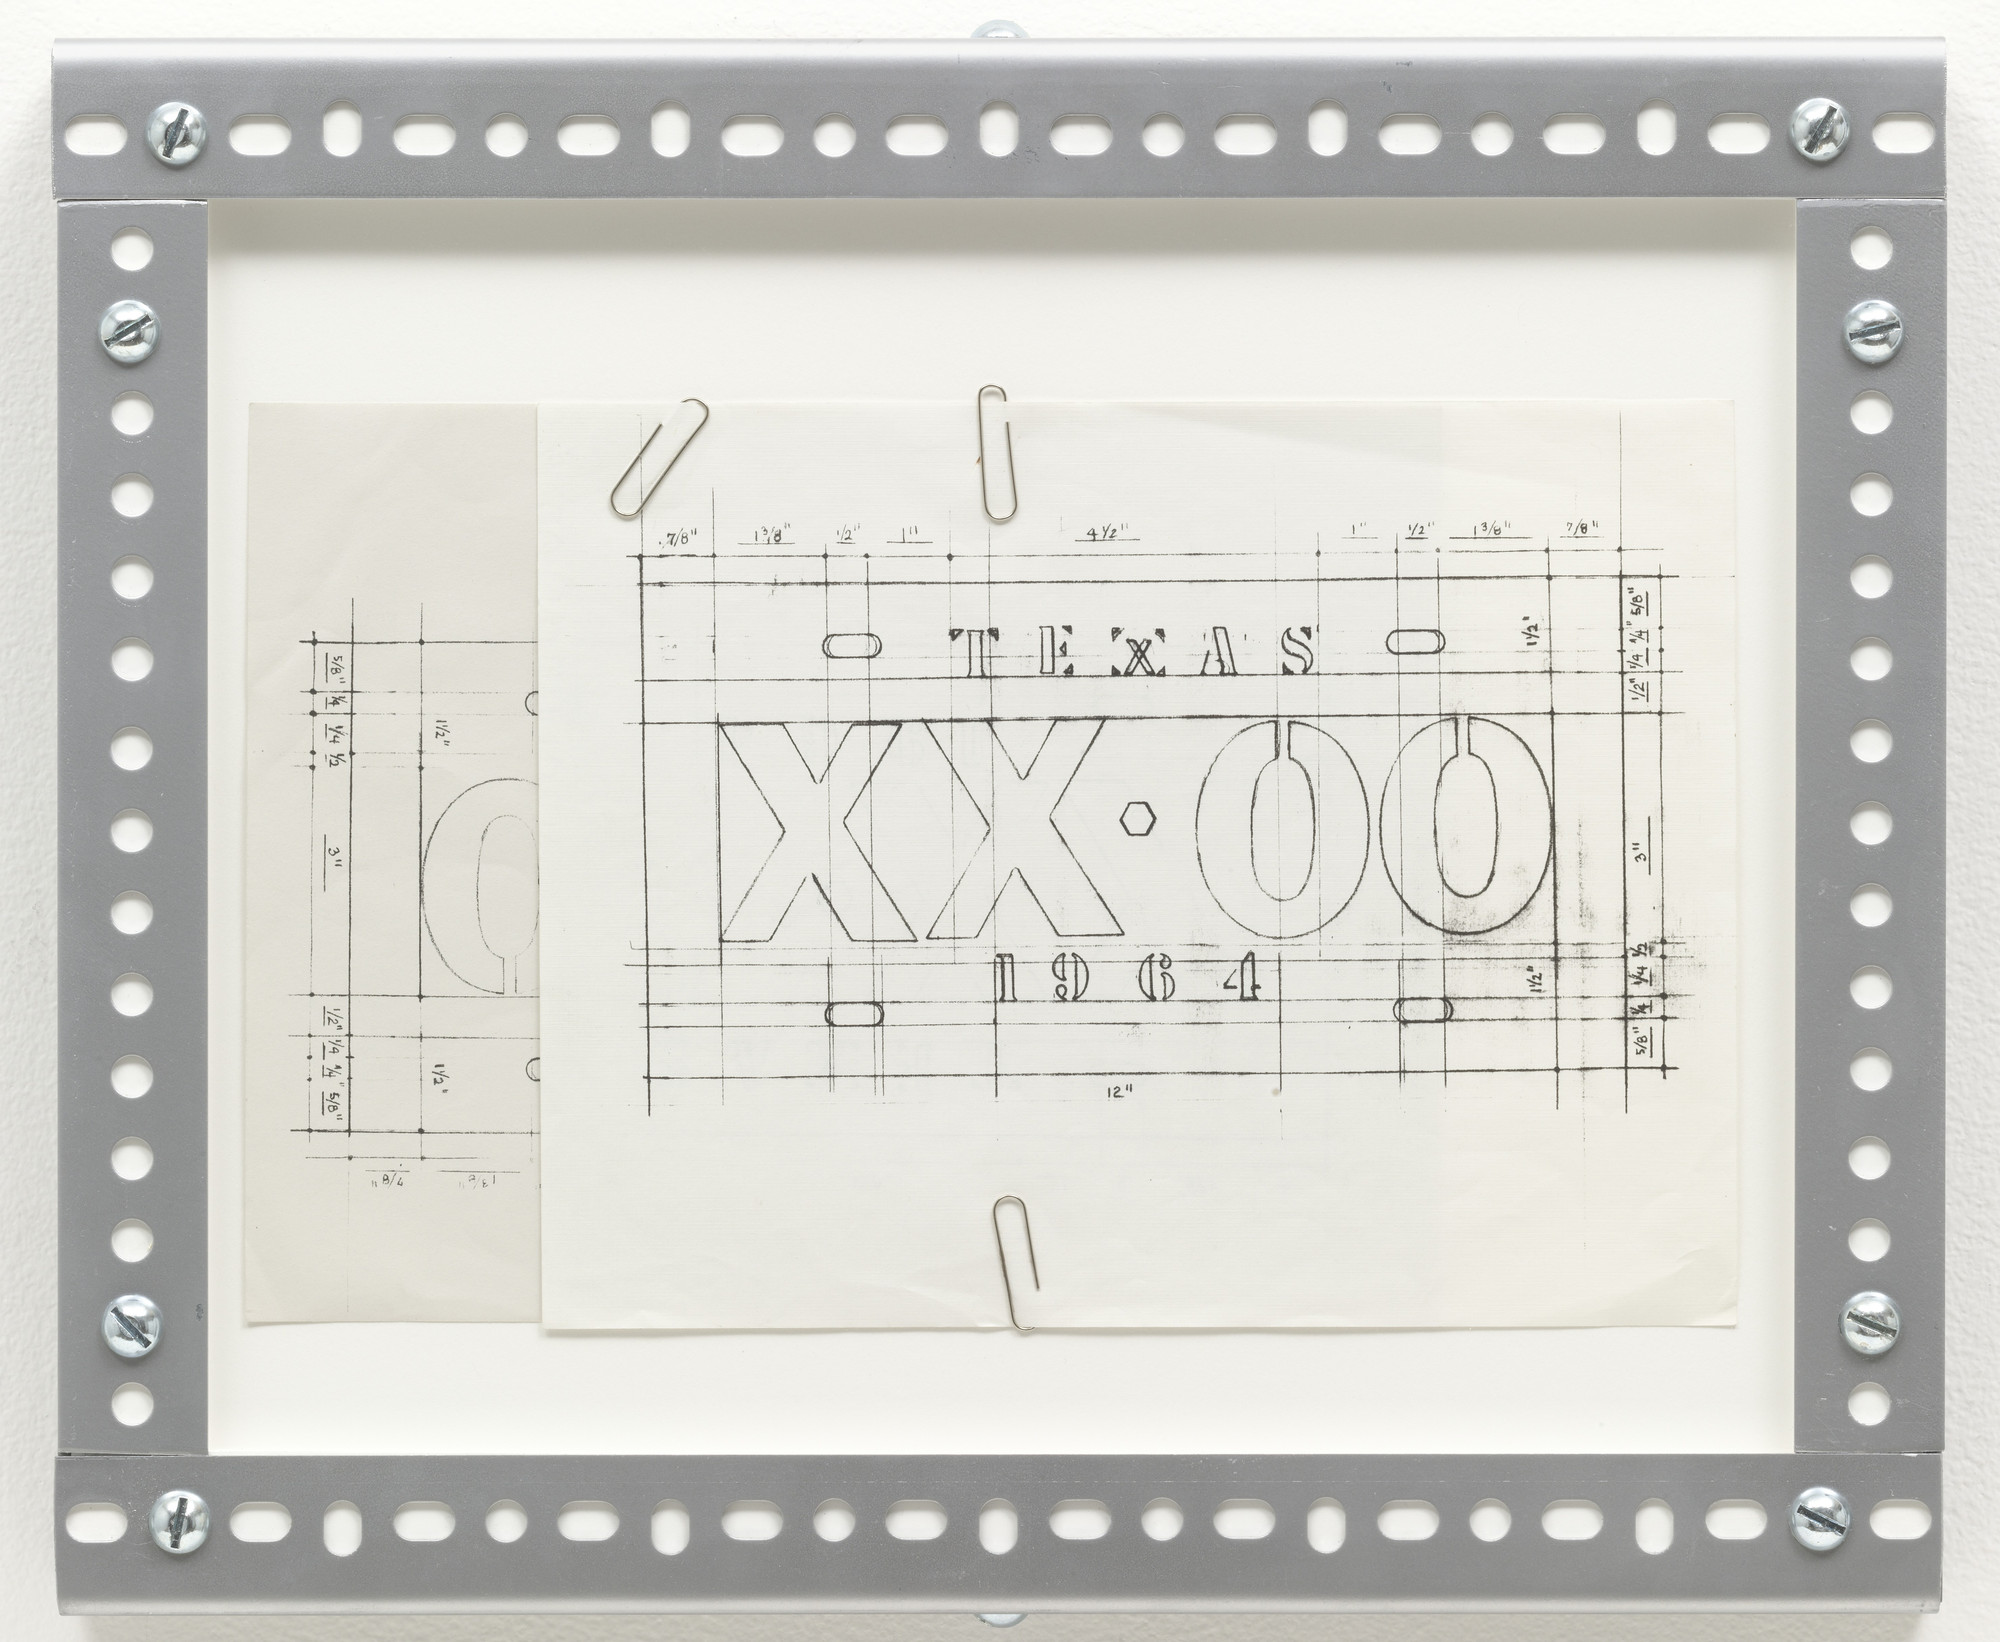 Cady Noland. Untitled (License Plate Drawing). 1988